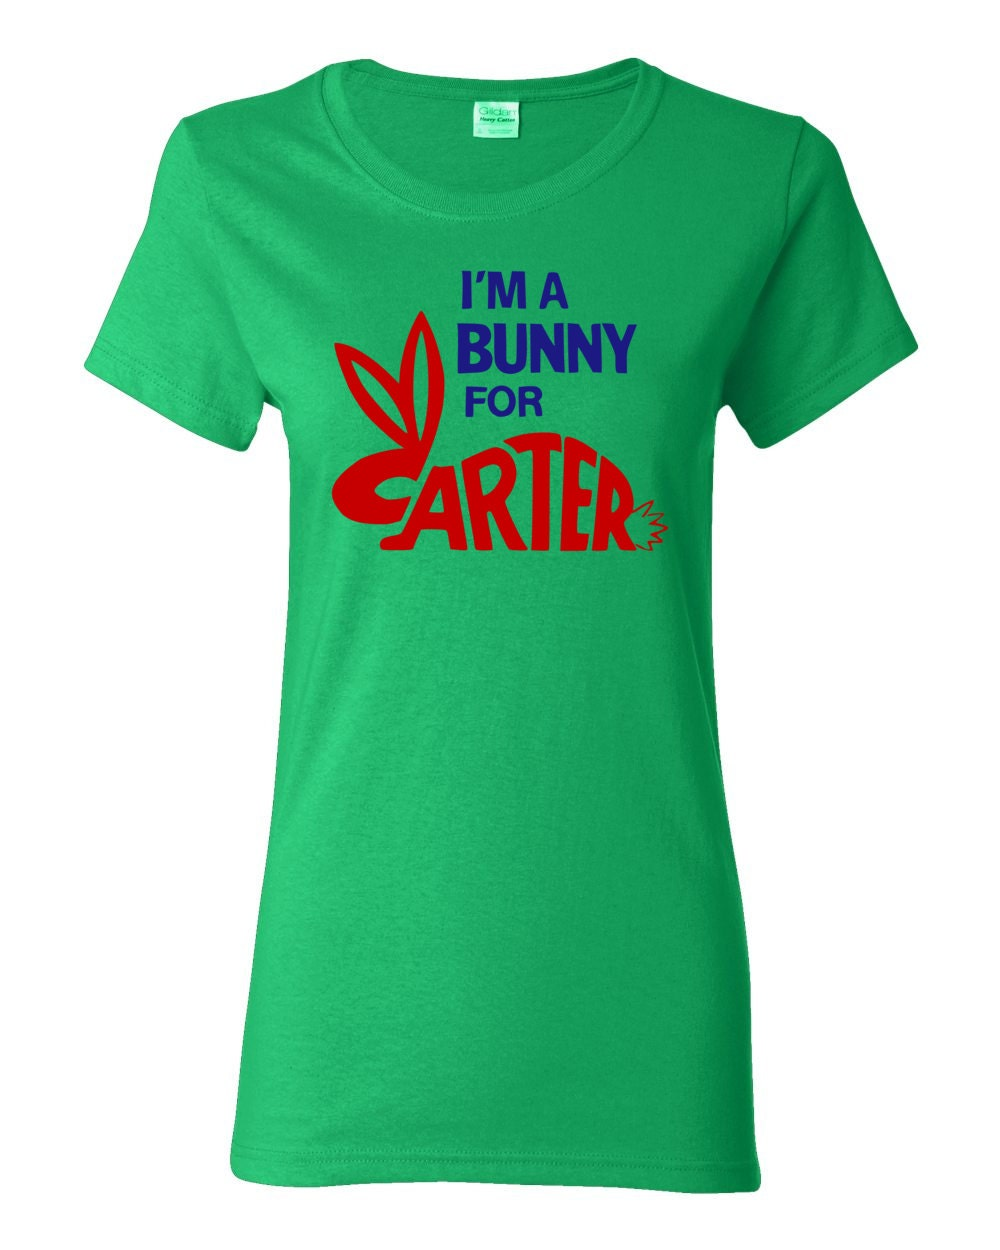 Jimmy Carter - I'm A Bunny For Carter - Presidential Campaign Button Womens T-shirt